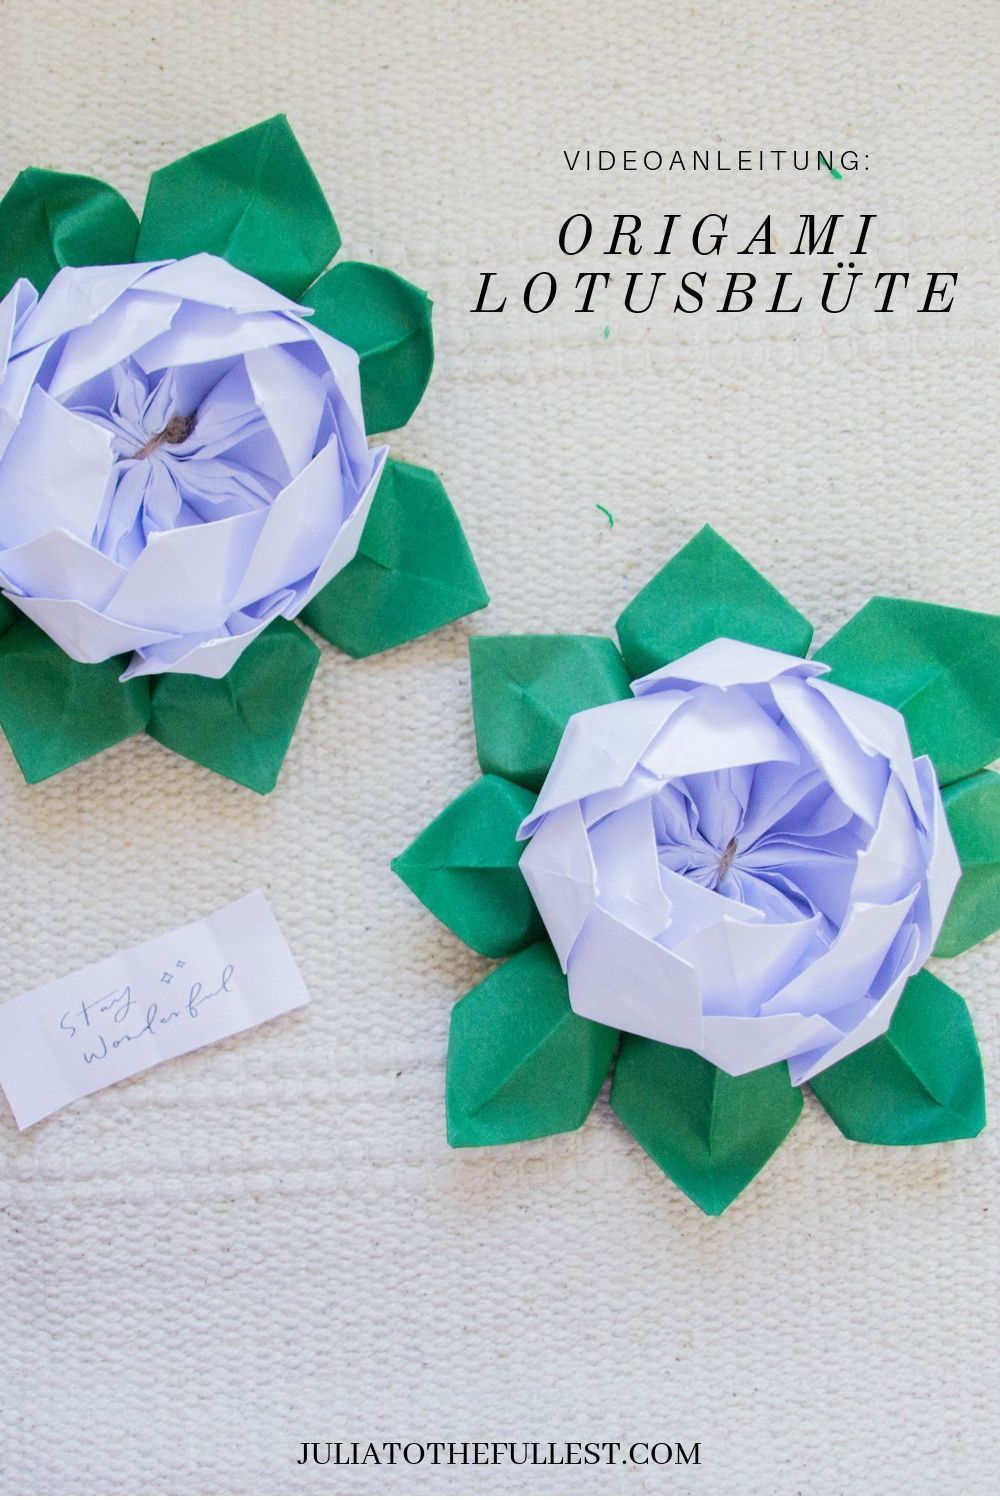 Photo of #DIY #lotusblute #mit #origami #Origami Blume #videoanleit